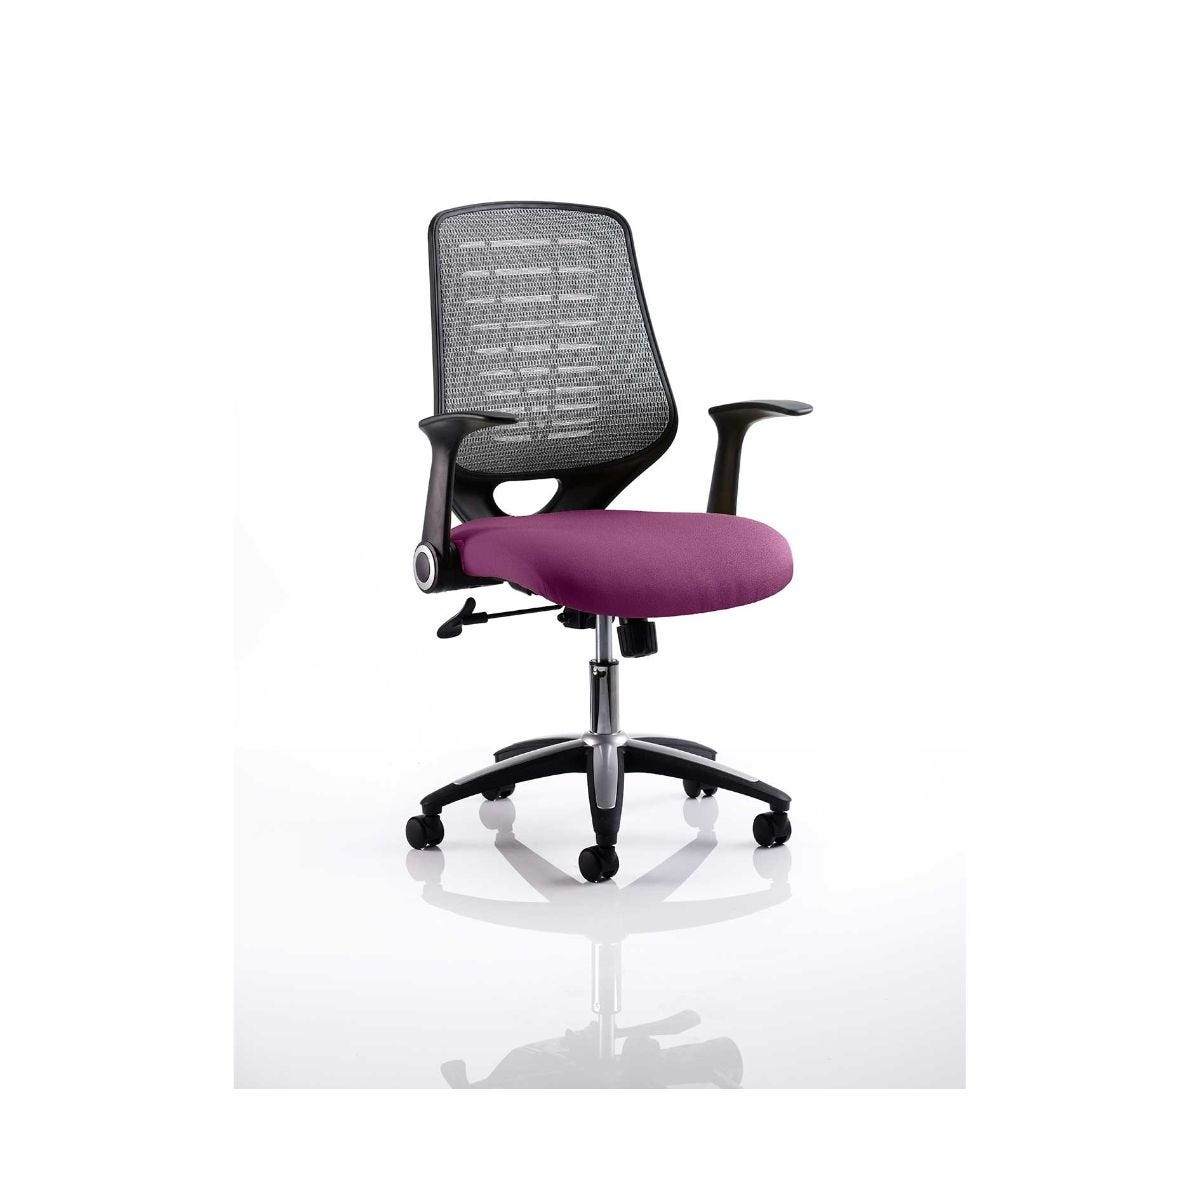 Relay Mesh Back Office Chair Silver, Purple